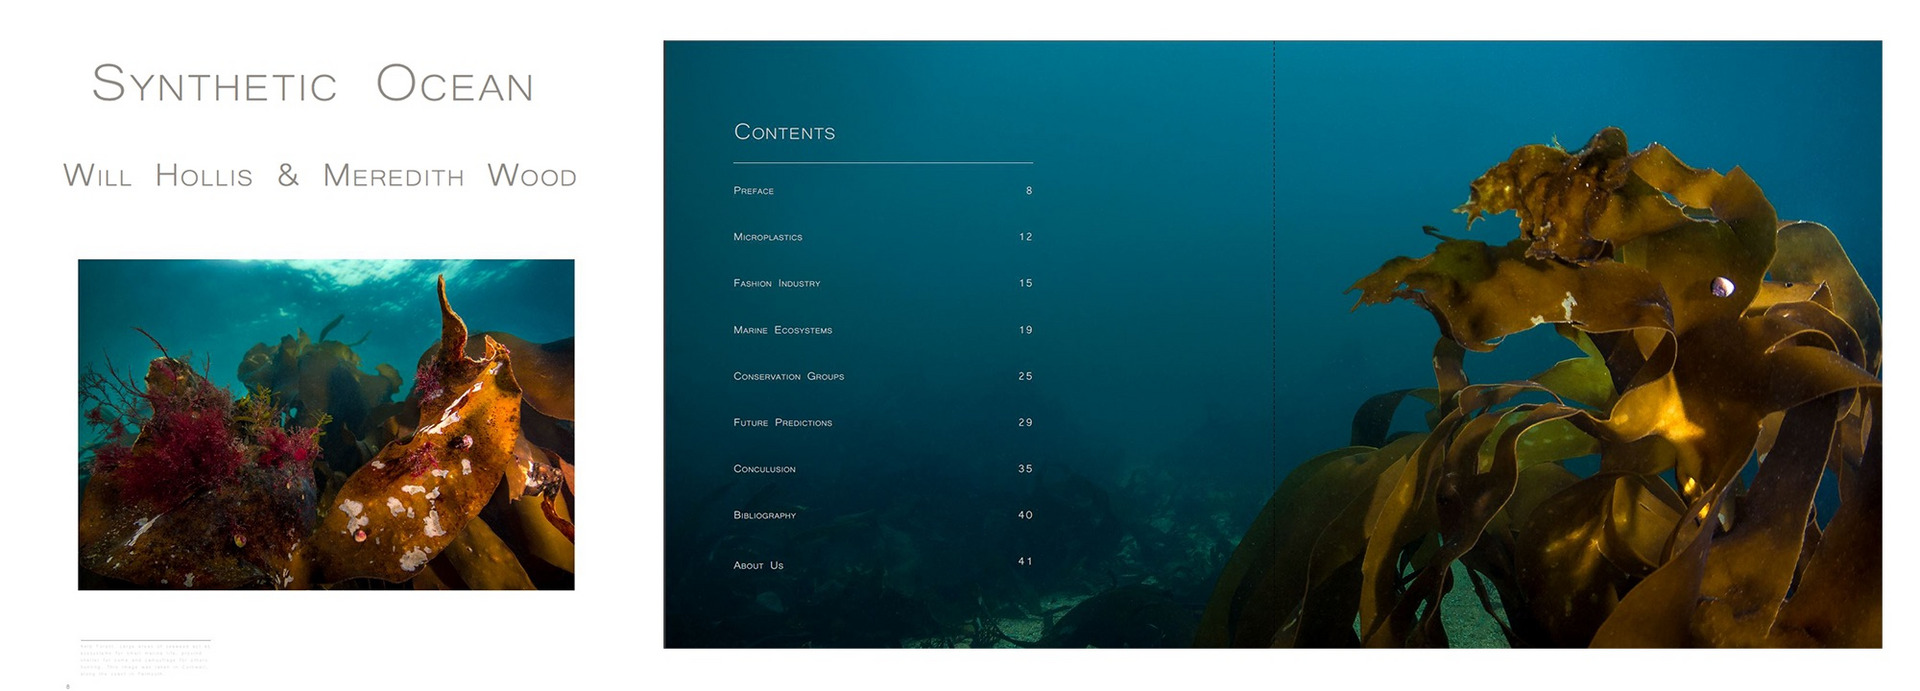 Synthetic Ocean - A Photographic & Research book in collaboration with Will Hollis